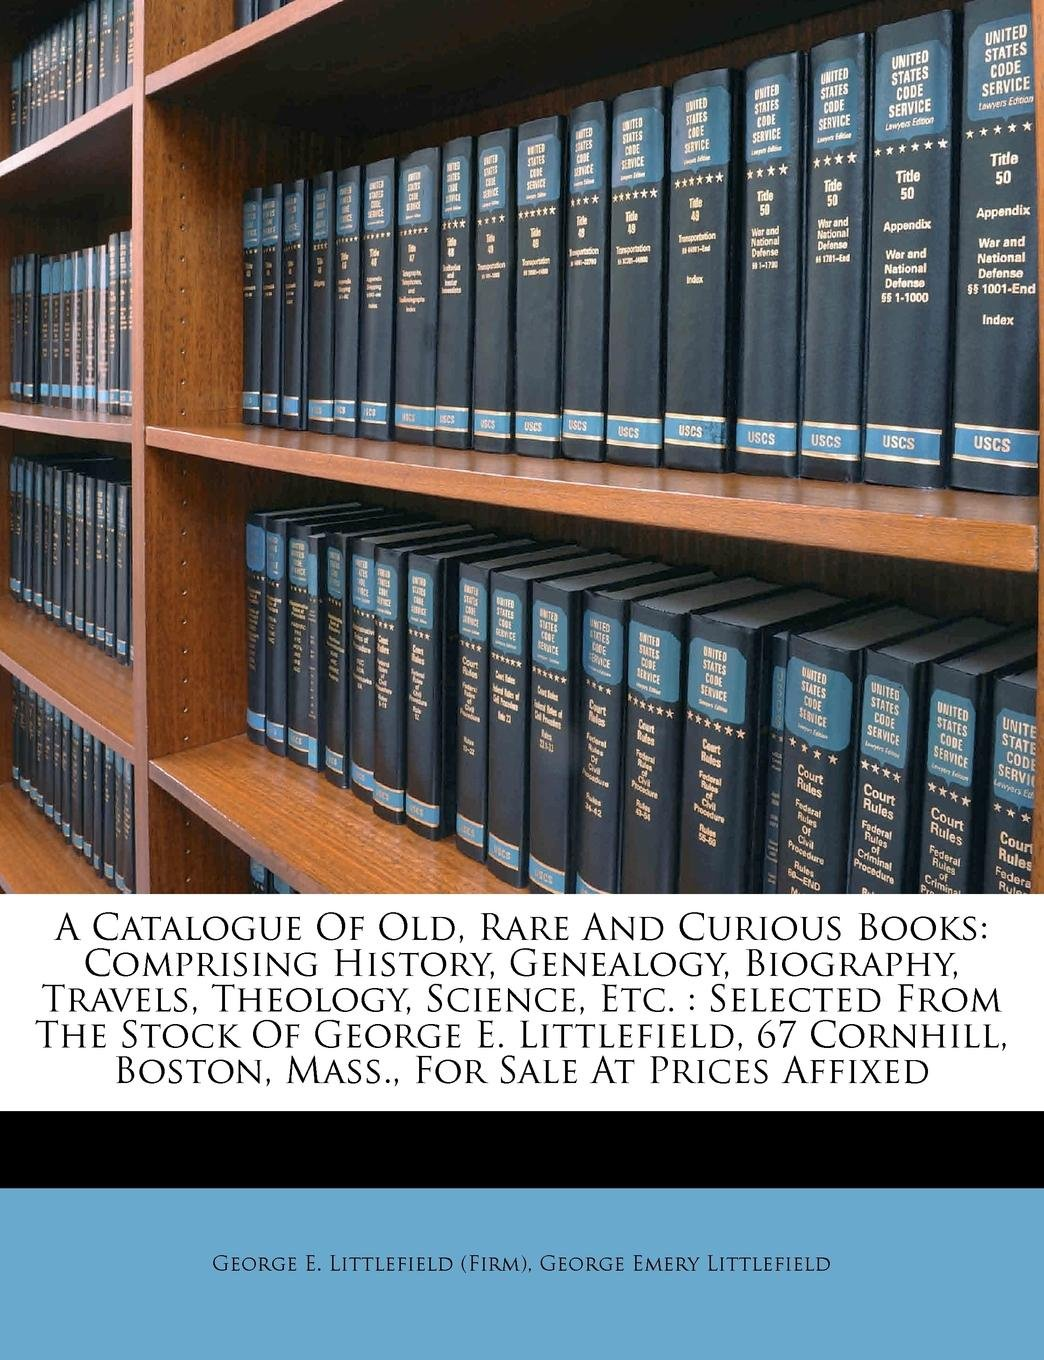 Download A Catalogue Of Old, Rare And Curious Books: Comprising History, Genealogy, Biography, Travels, Theology, Science, Etc. : Selected From The Stock Of ... Sale At Prices Affixed (Afrikaans Edition) pdf